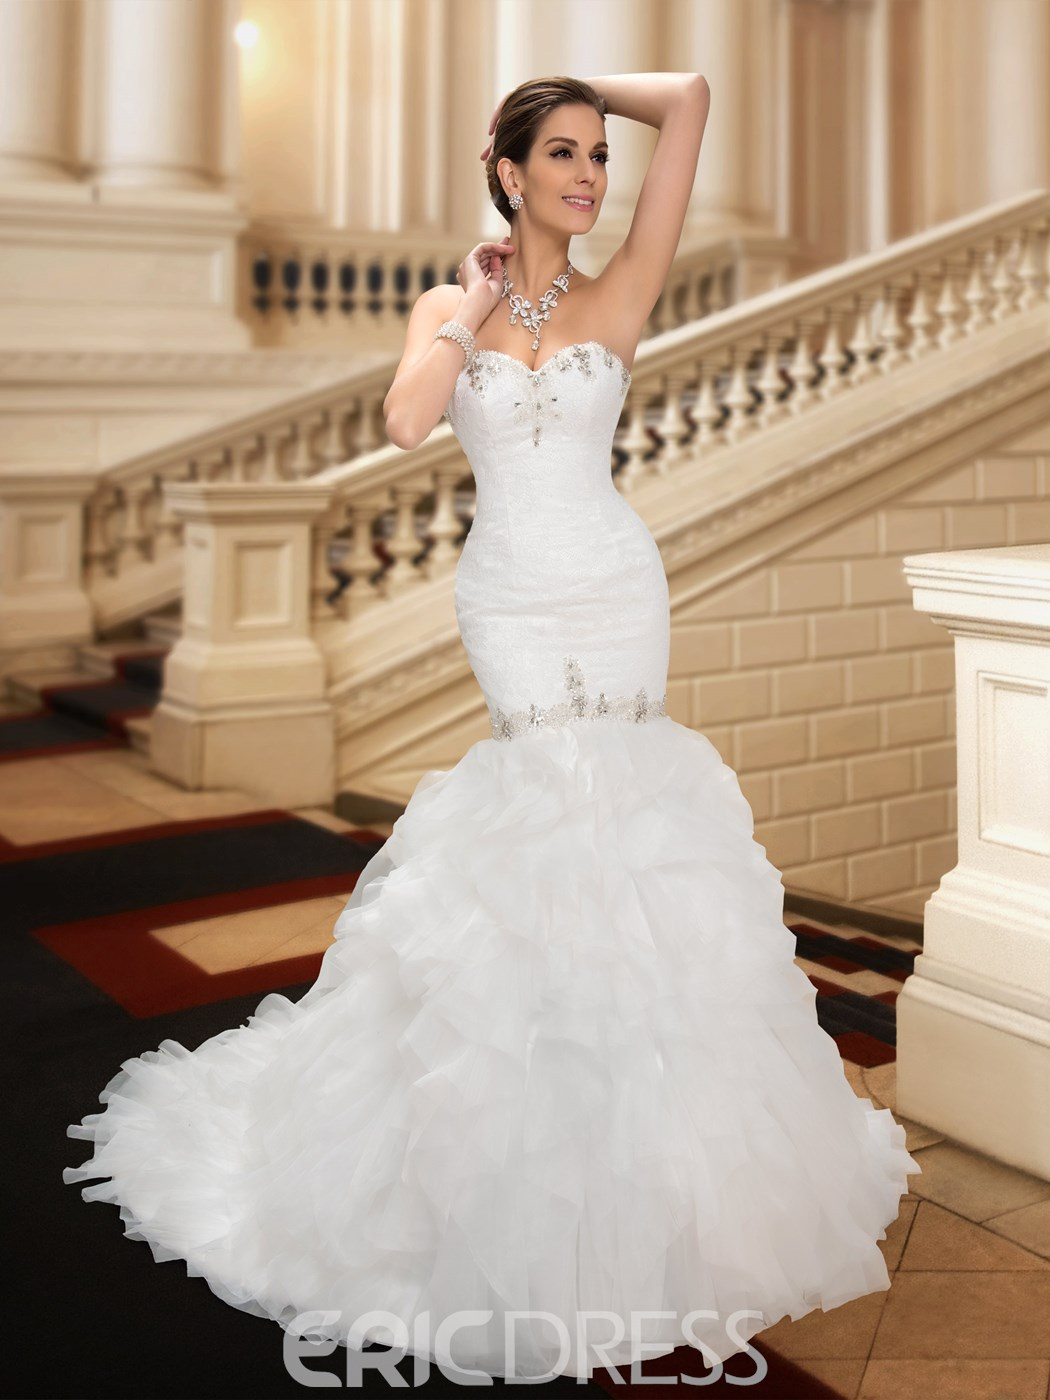 f7df3940b64c Ericdress Sweetheart Beading Ruffles Mermaid Wedding Dress 11123976 ...